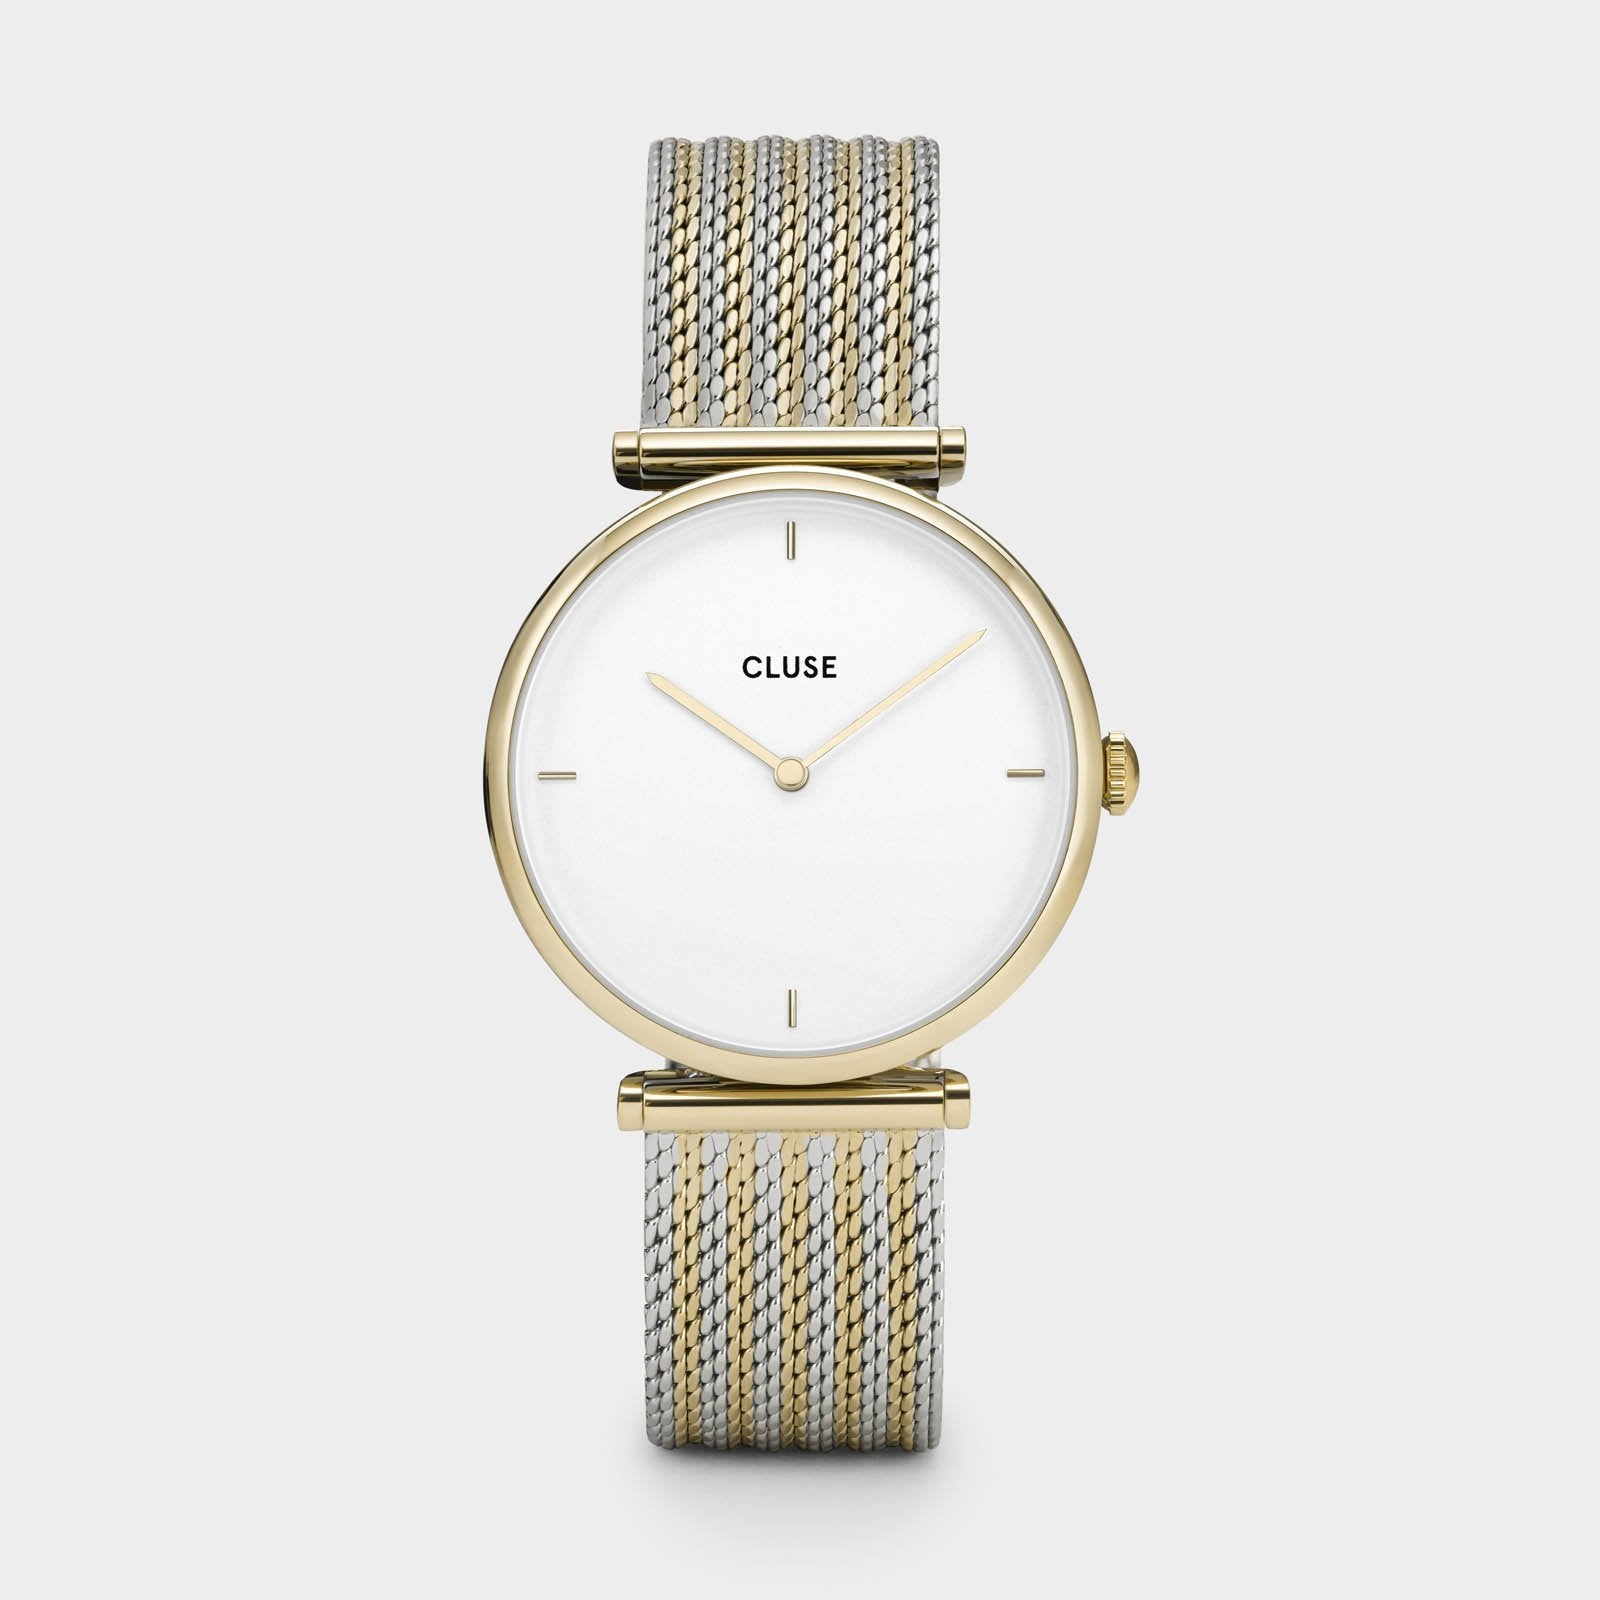 CLUSE Triomphe Gold Bicolour Mesh CL61002 - watch